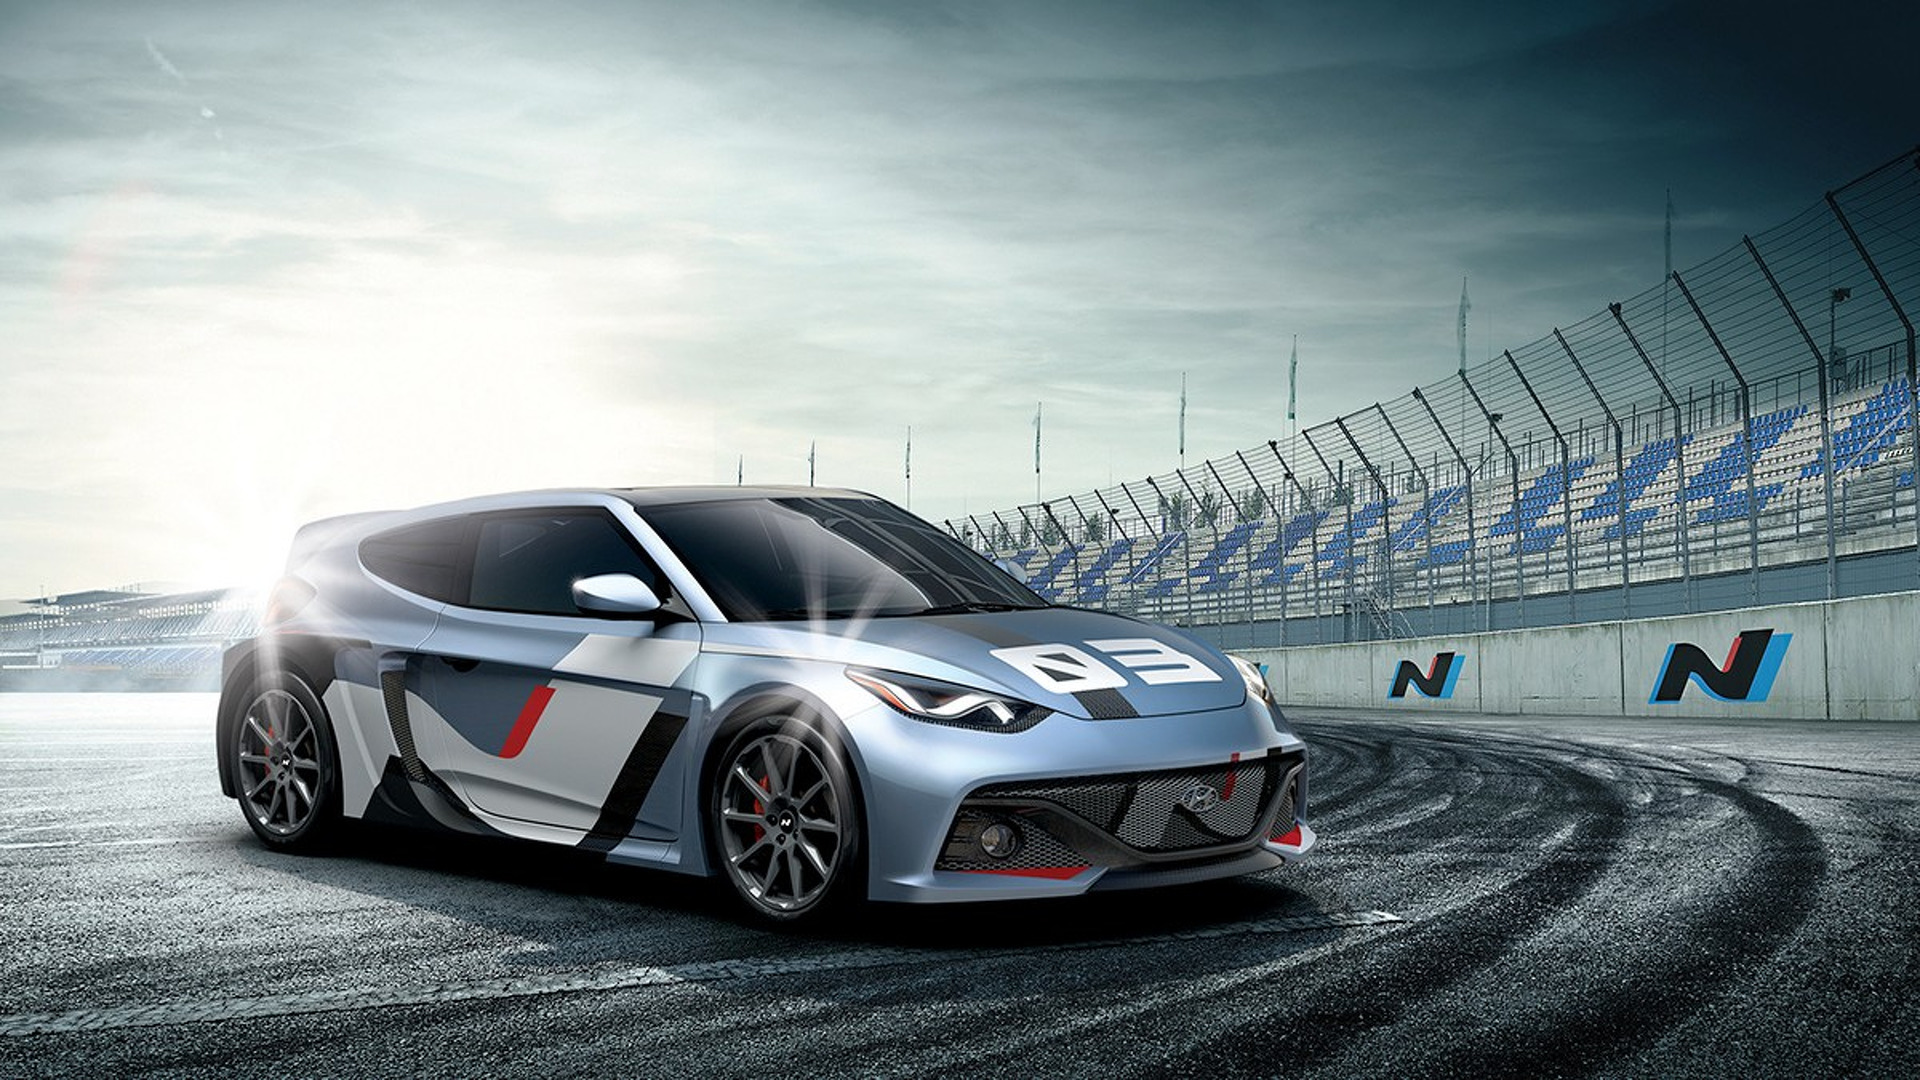 300-hp Hyundai RM16 N concept debuts with new look